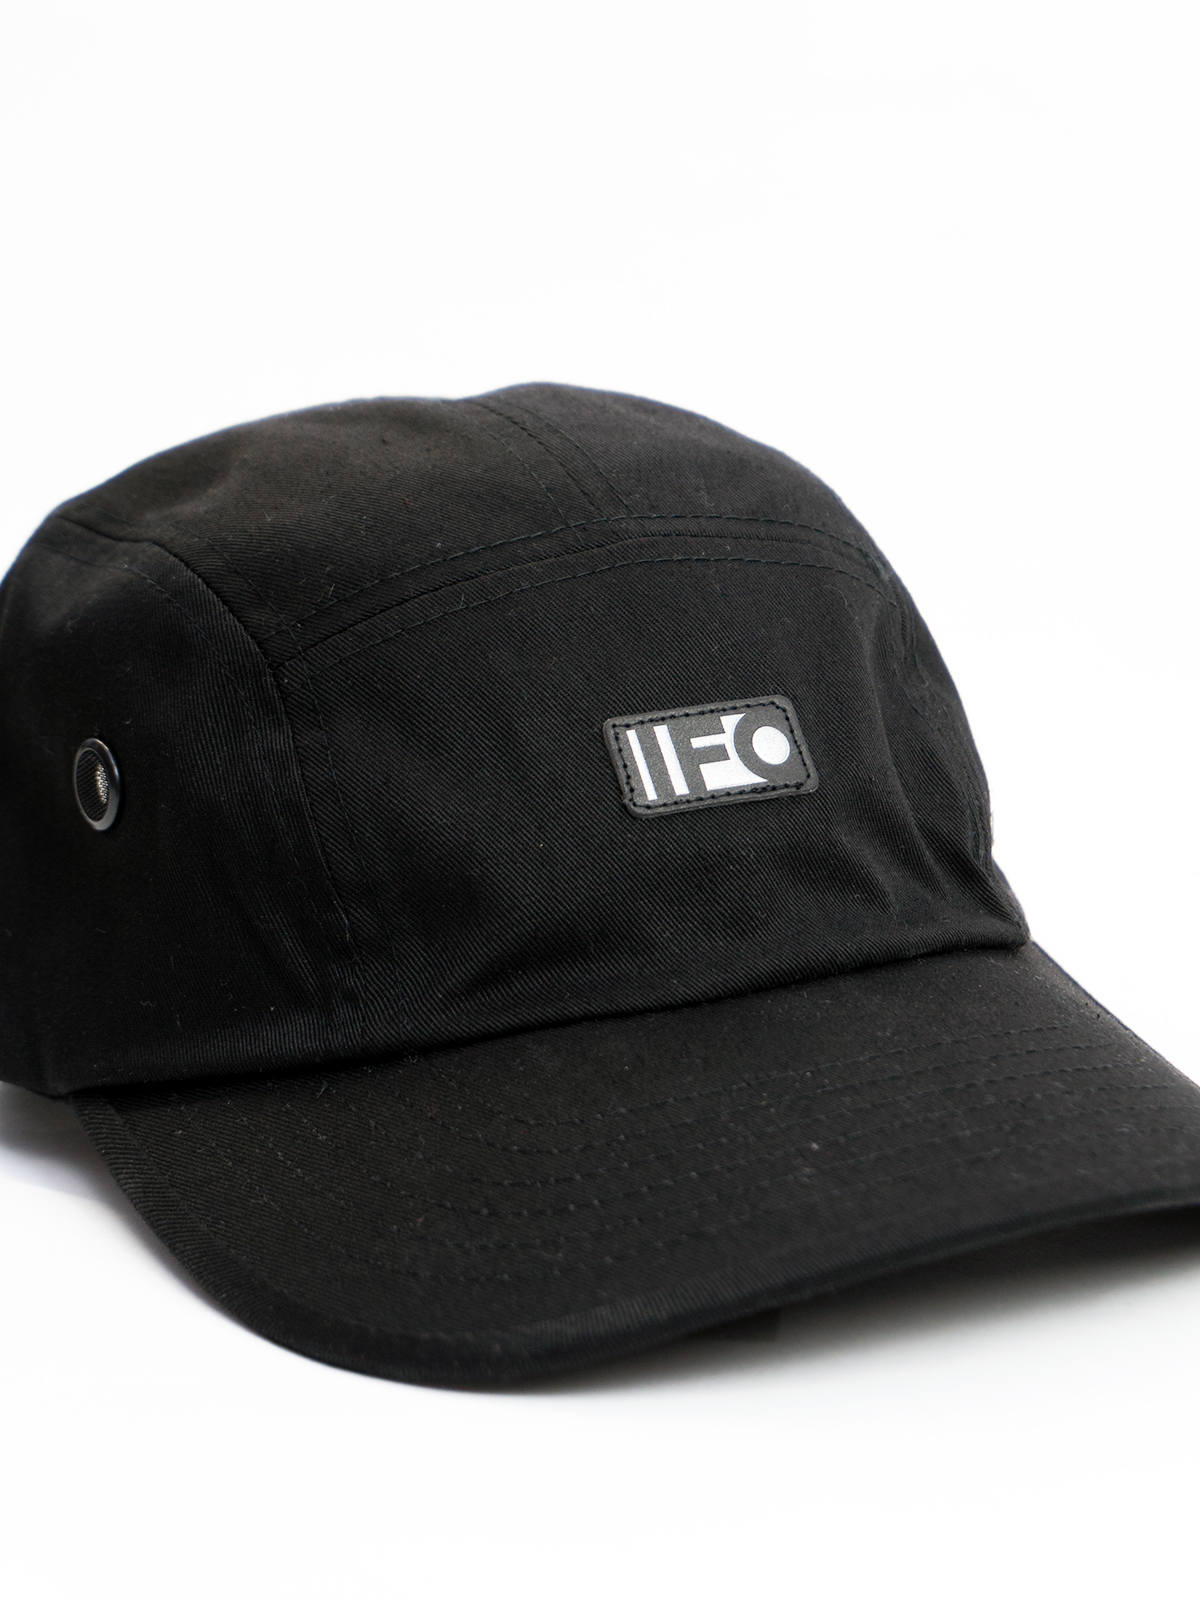 CUTOUT-LOGO-CAMPER-HAT_Black_shop04